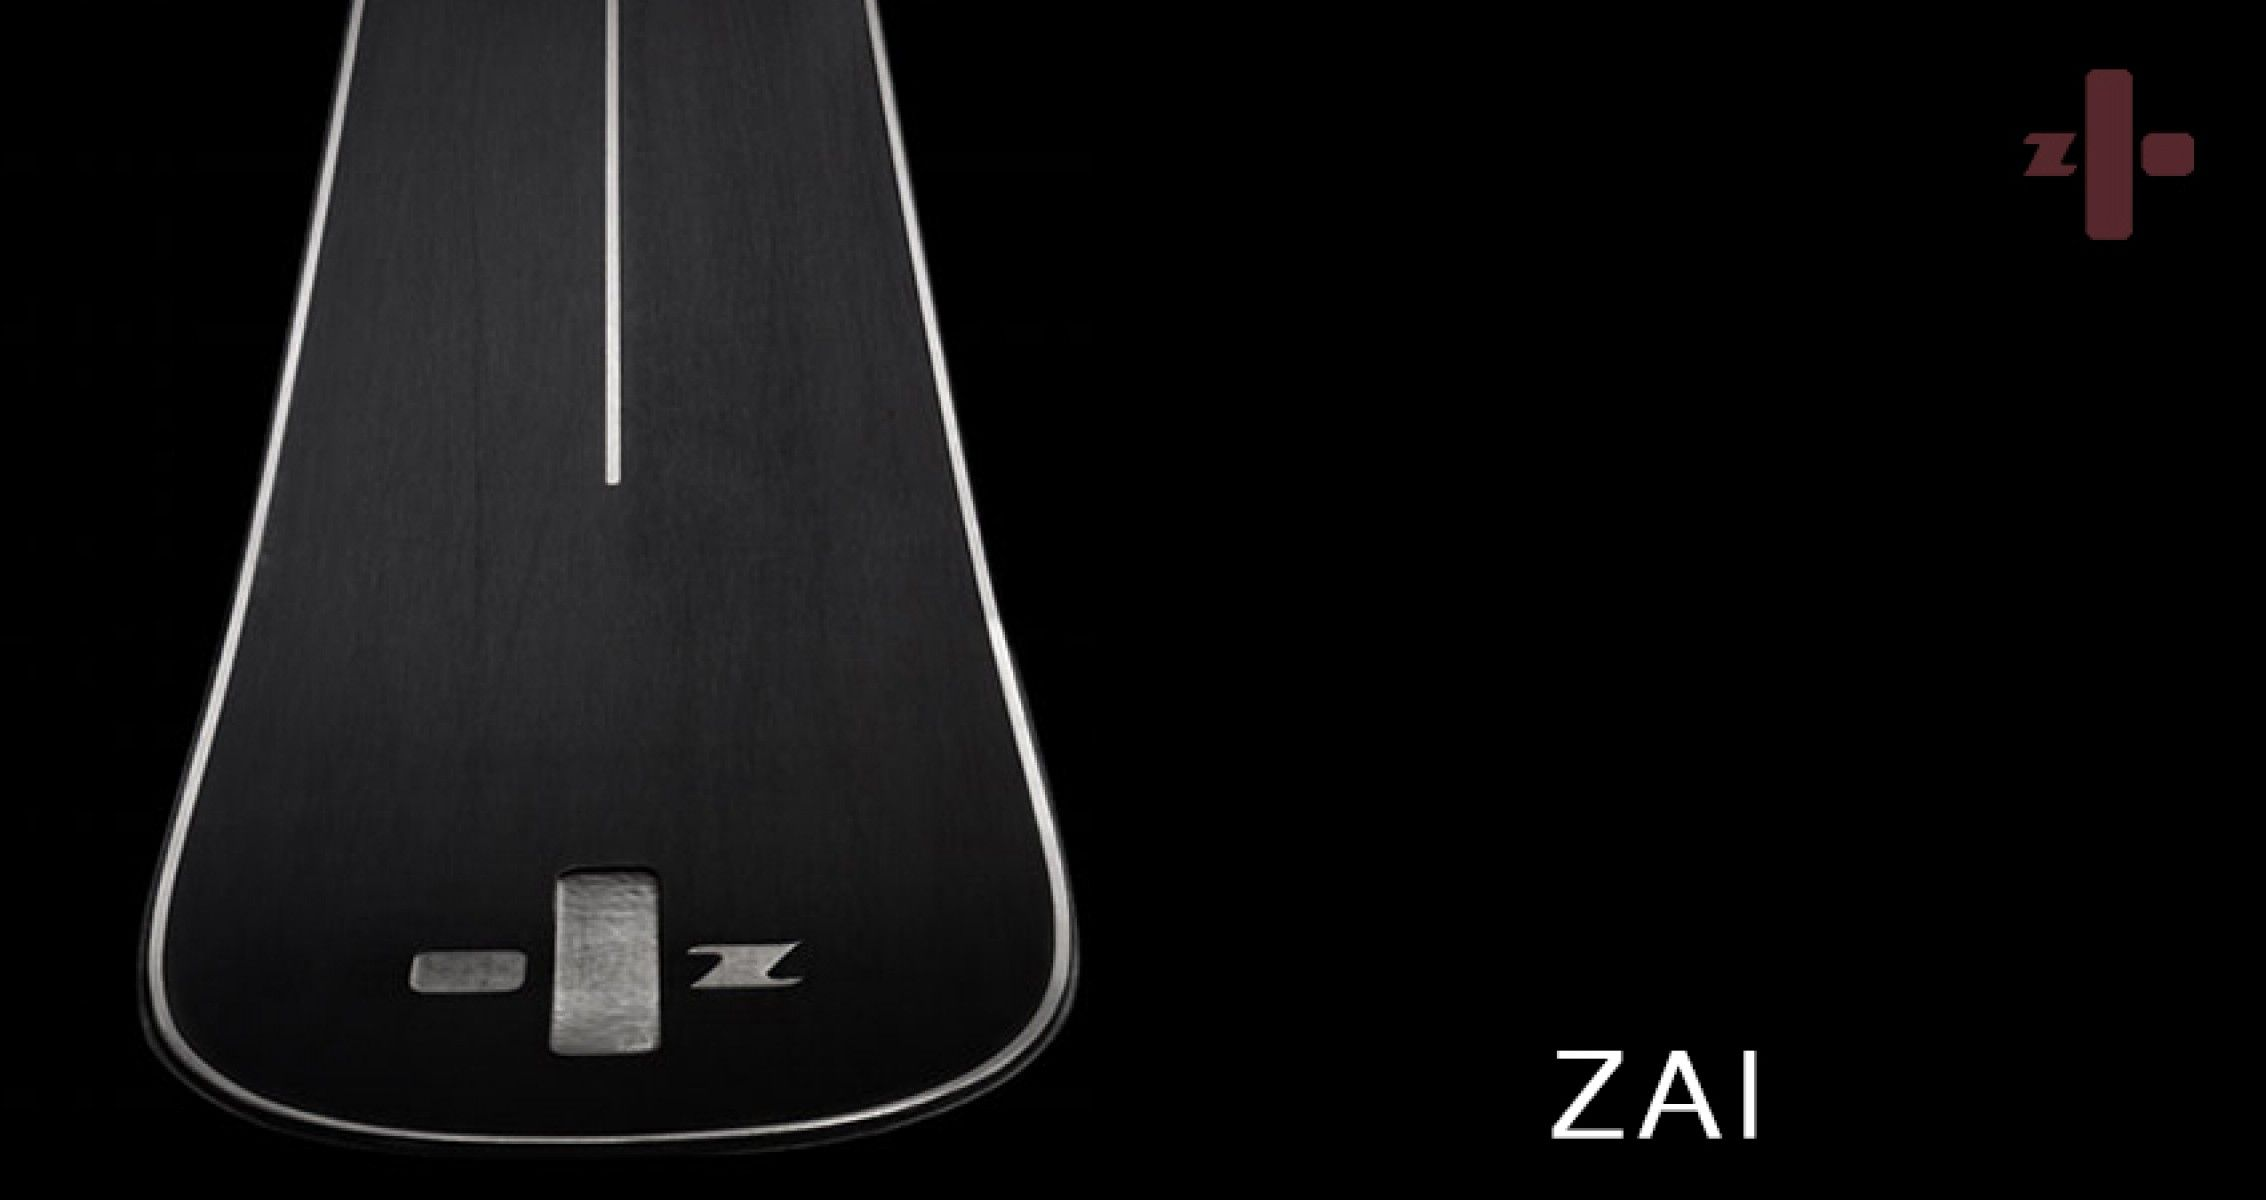 Zai Ski Franco Zai Franco World Class Ski Specially Developed For Swiss Former World Cup Ski Racer And One Of The Most World Cup Skiing Skiing Franco